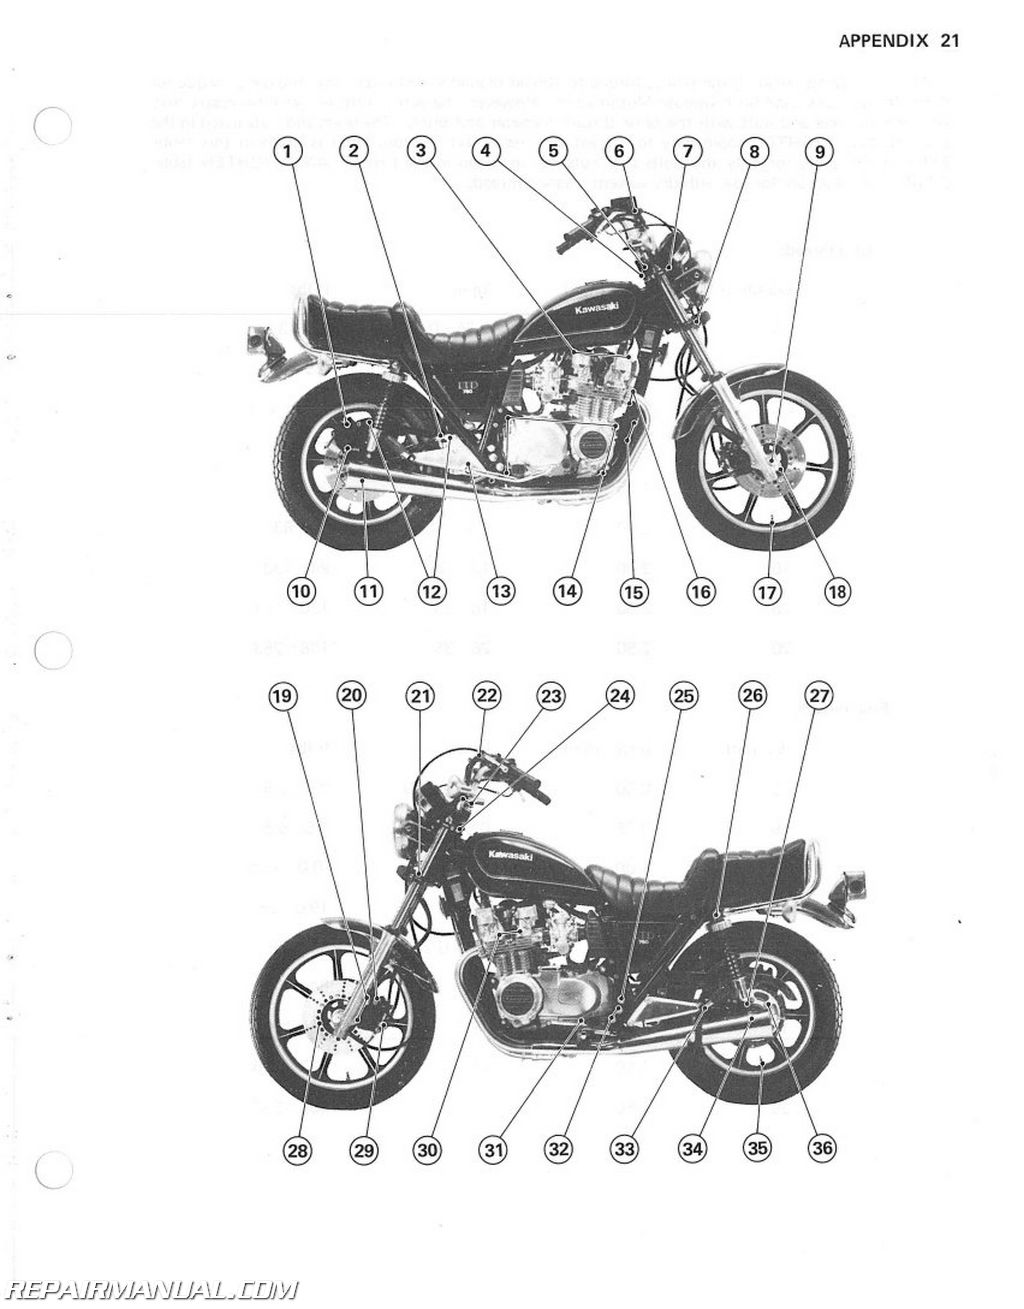 1980 Kawasaki KZ750H1 LTD Motorcycle Assembly Preparation